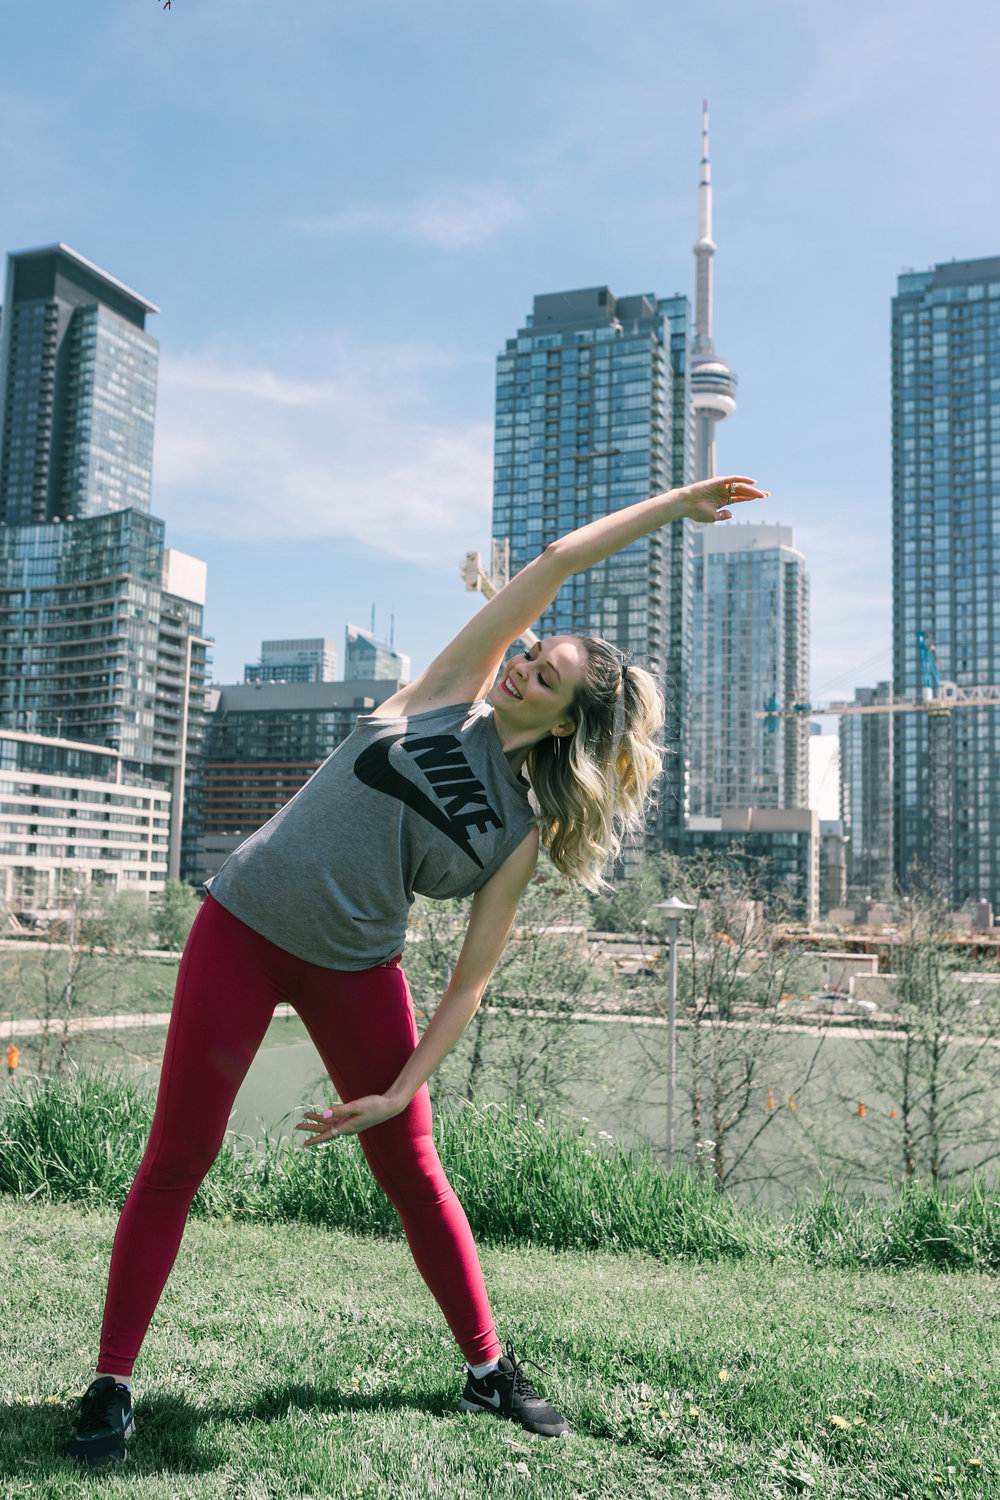 Sara Buckingham - I've always been a big dreamer (Pisces am I right?)... By day, I work 9 to 5 in the tech industry, as a Customer Success Manager. By night, I am Bumble Toronto's Market lead, and I teach my own Barre Fitness classes. I love trying new dance and fitness classes in Toronto, as well as travelling the world. My biggest passions are wellness and women empowerment. Let's hustle and make our dreams come true together.-xo,Saraabucks